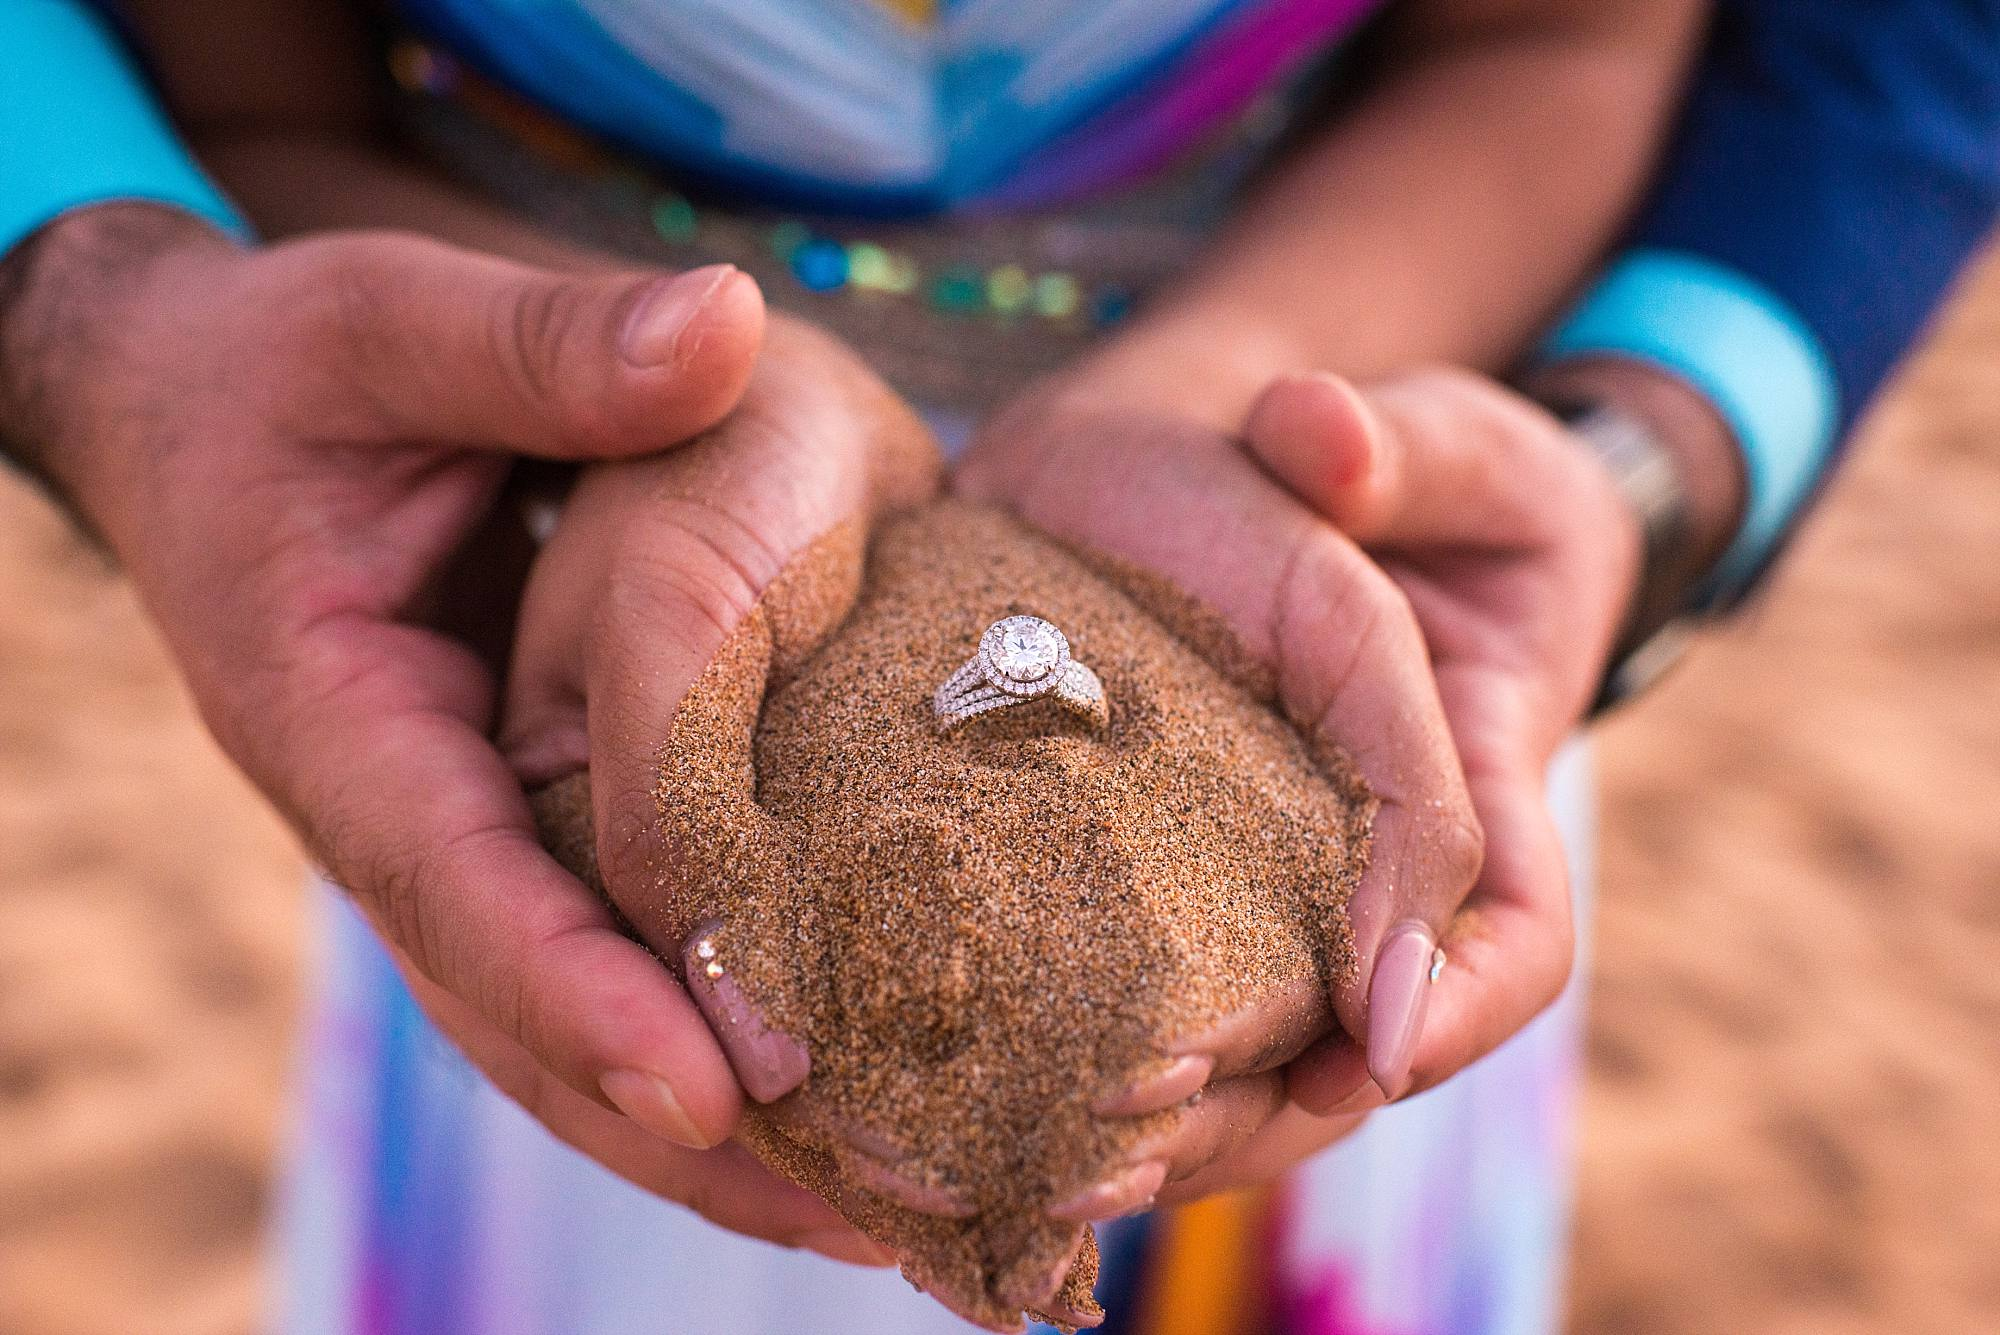 engagement ring in the sand within two hands